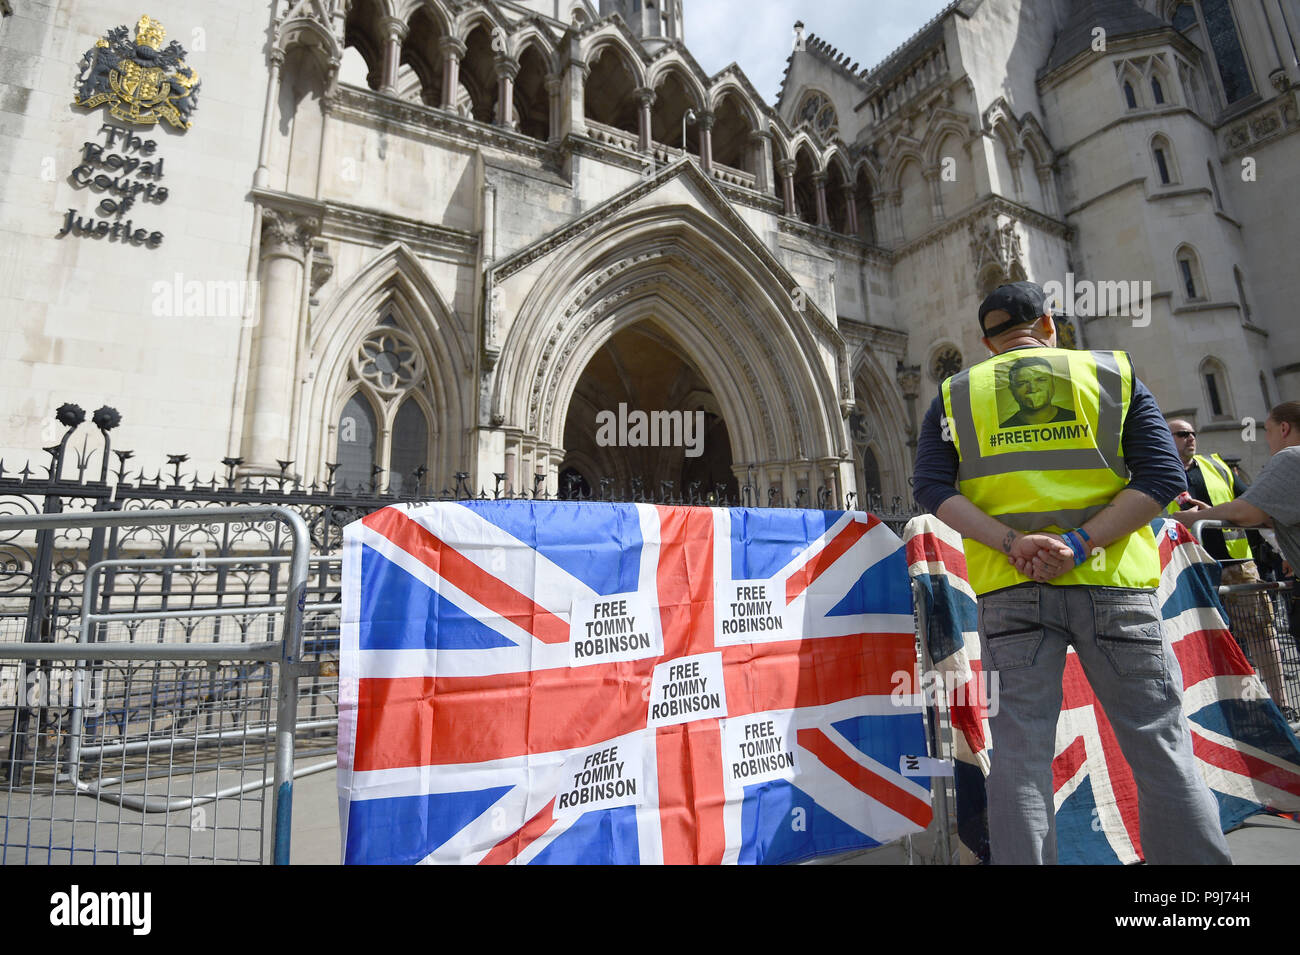 Supporters of former English Defence League (EDL) leader